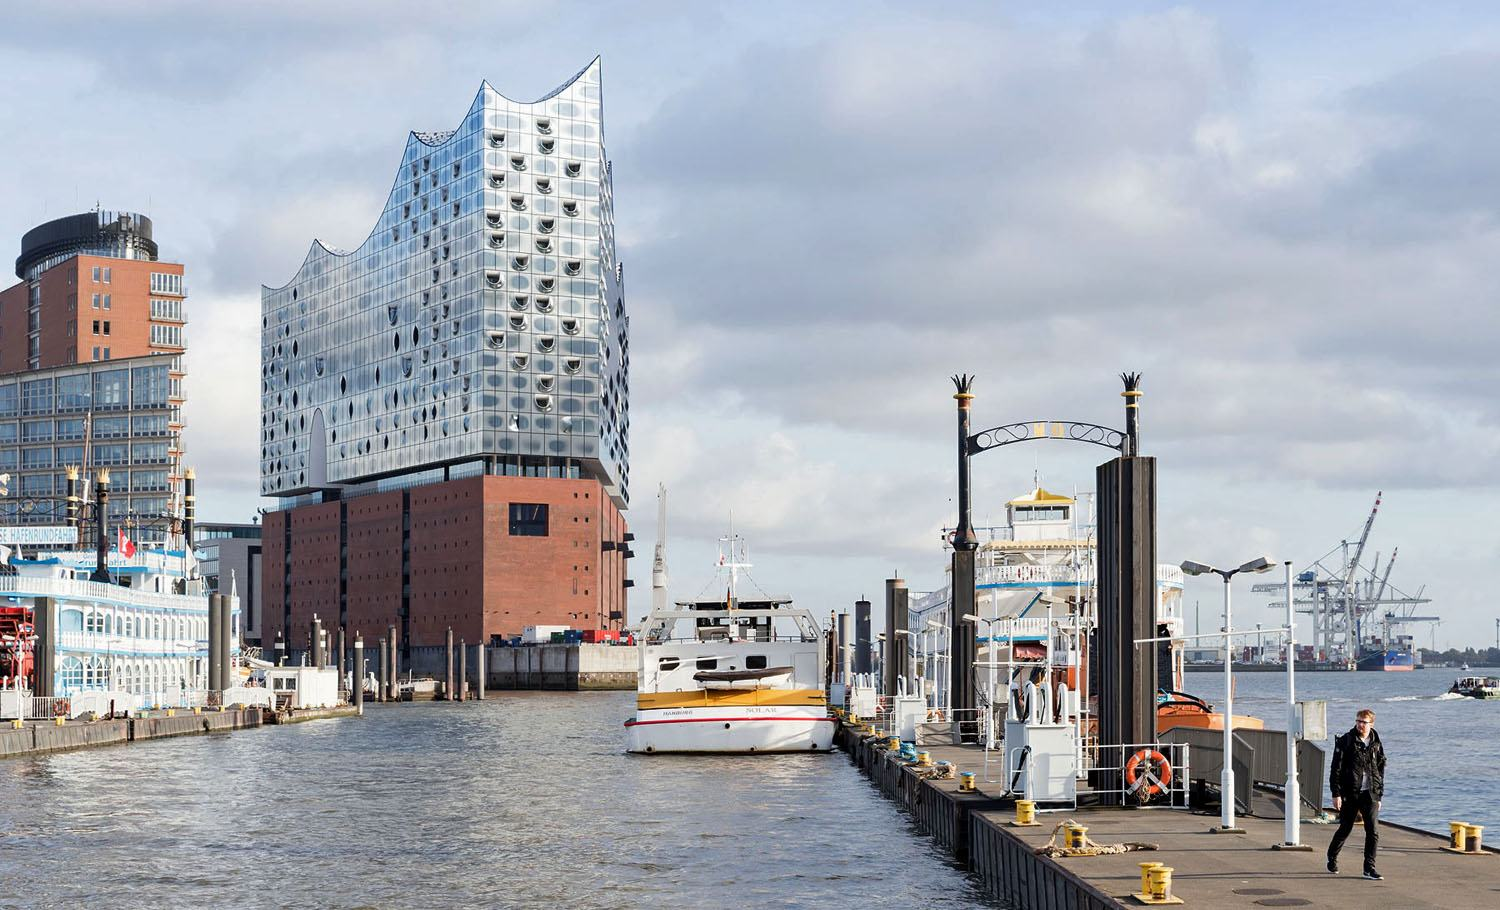 Hamburg Elbphilharmonie in its harbor surroundings.